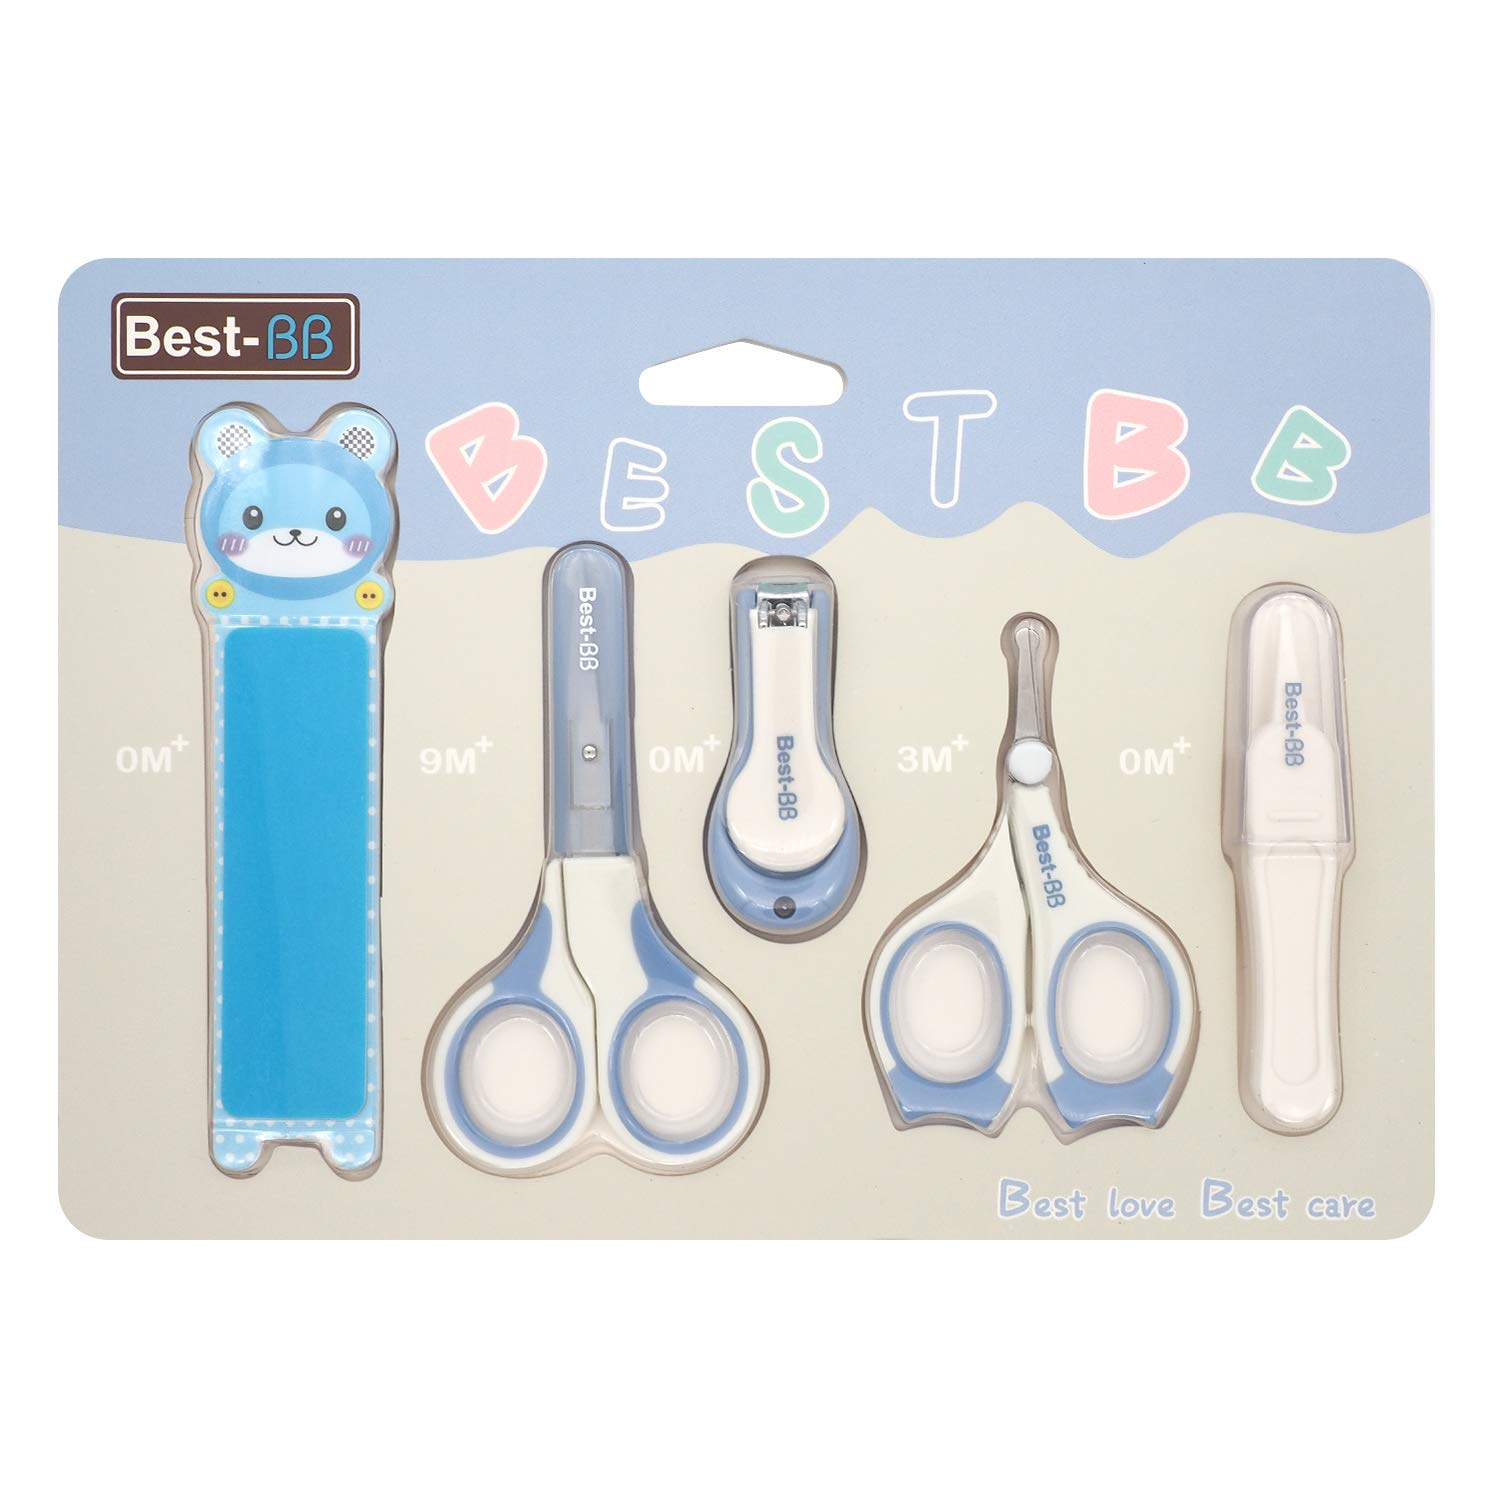 5 Pieces Baby Nail Clipper Set Including Nail Scissors and Tweezer, Kids Manicure Set Grooming Kit for Toddler, Infant Baby Nail Care Kit for Newborn (Blue)